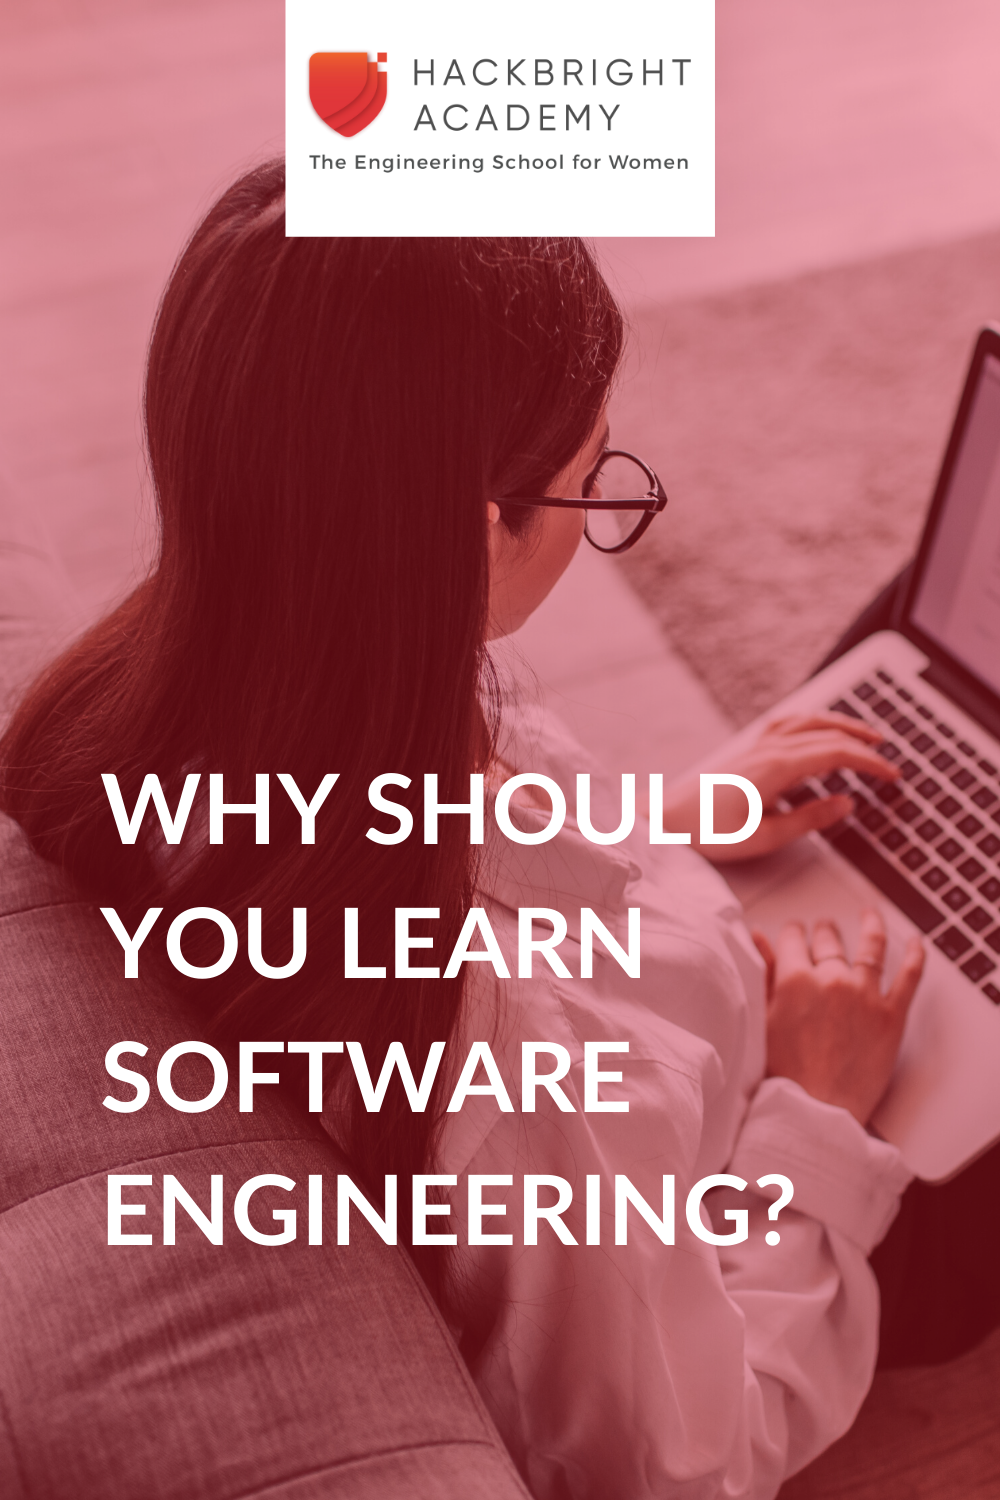 Why Should You Learn Software Engineering?